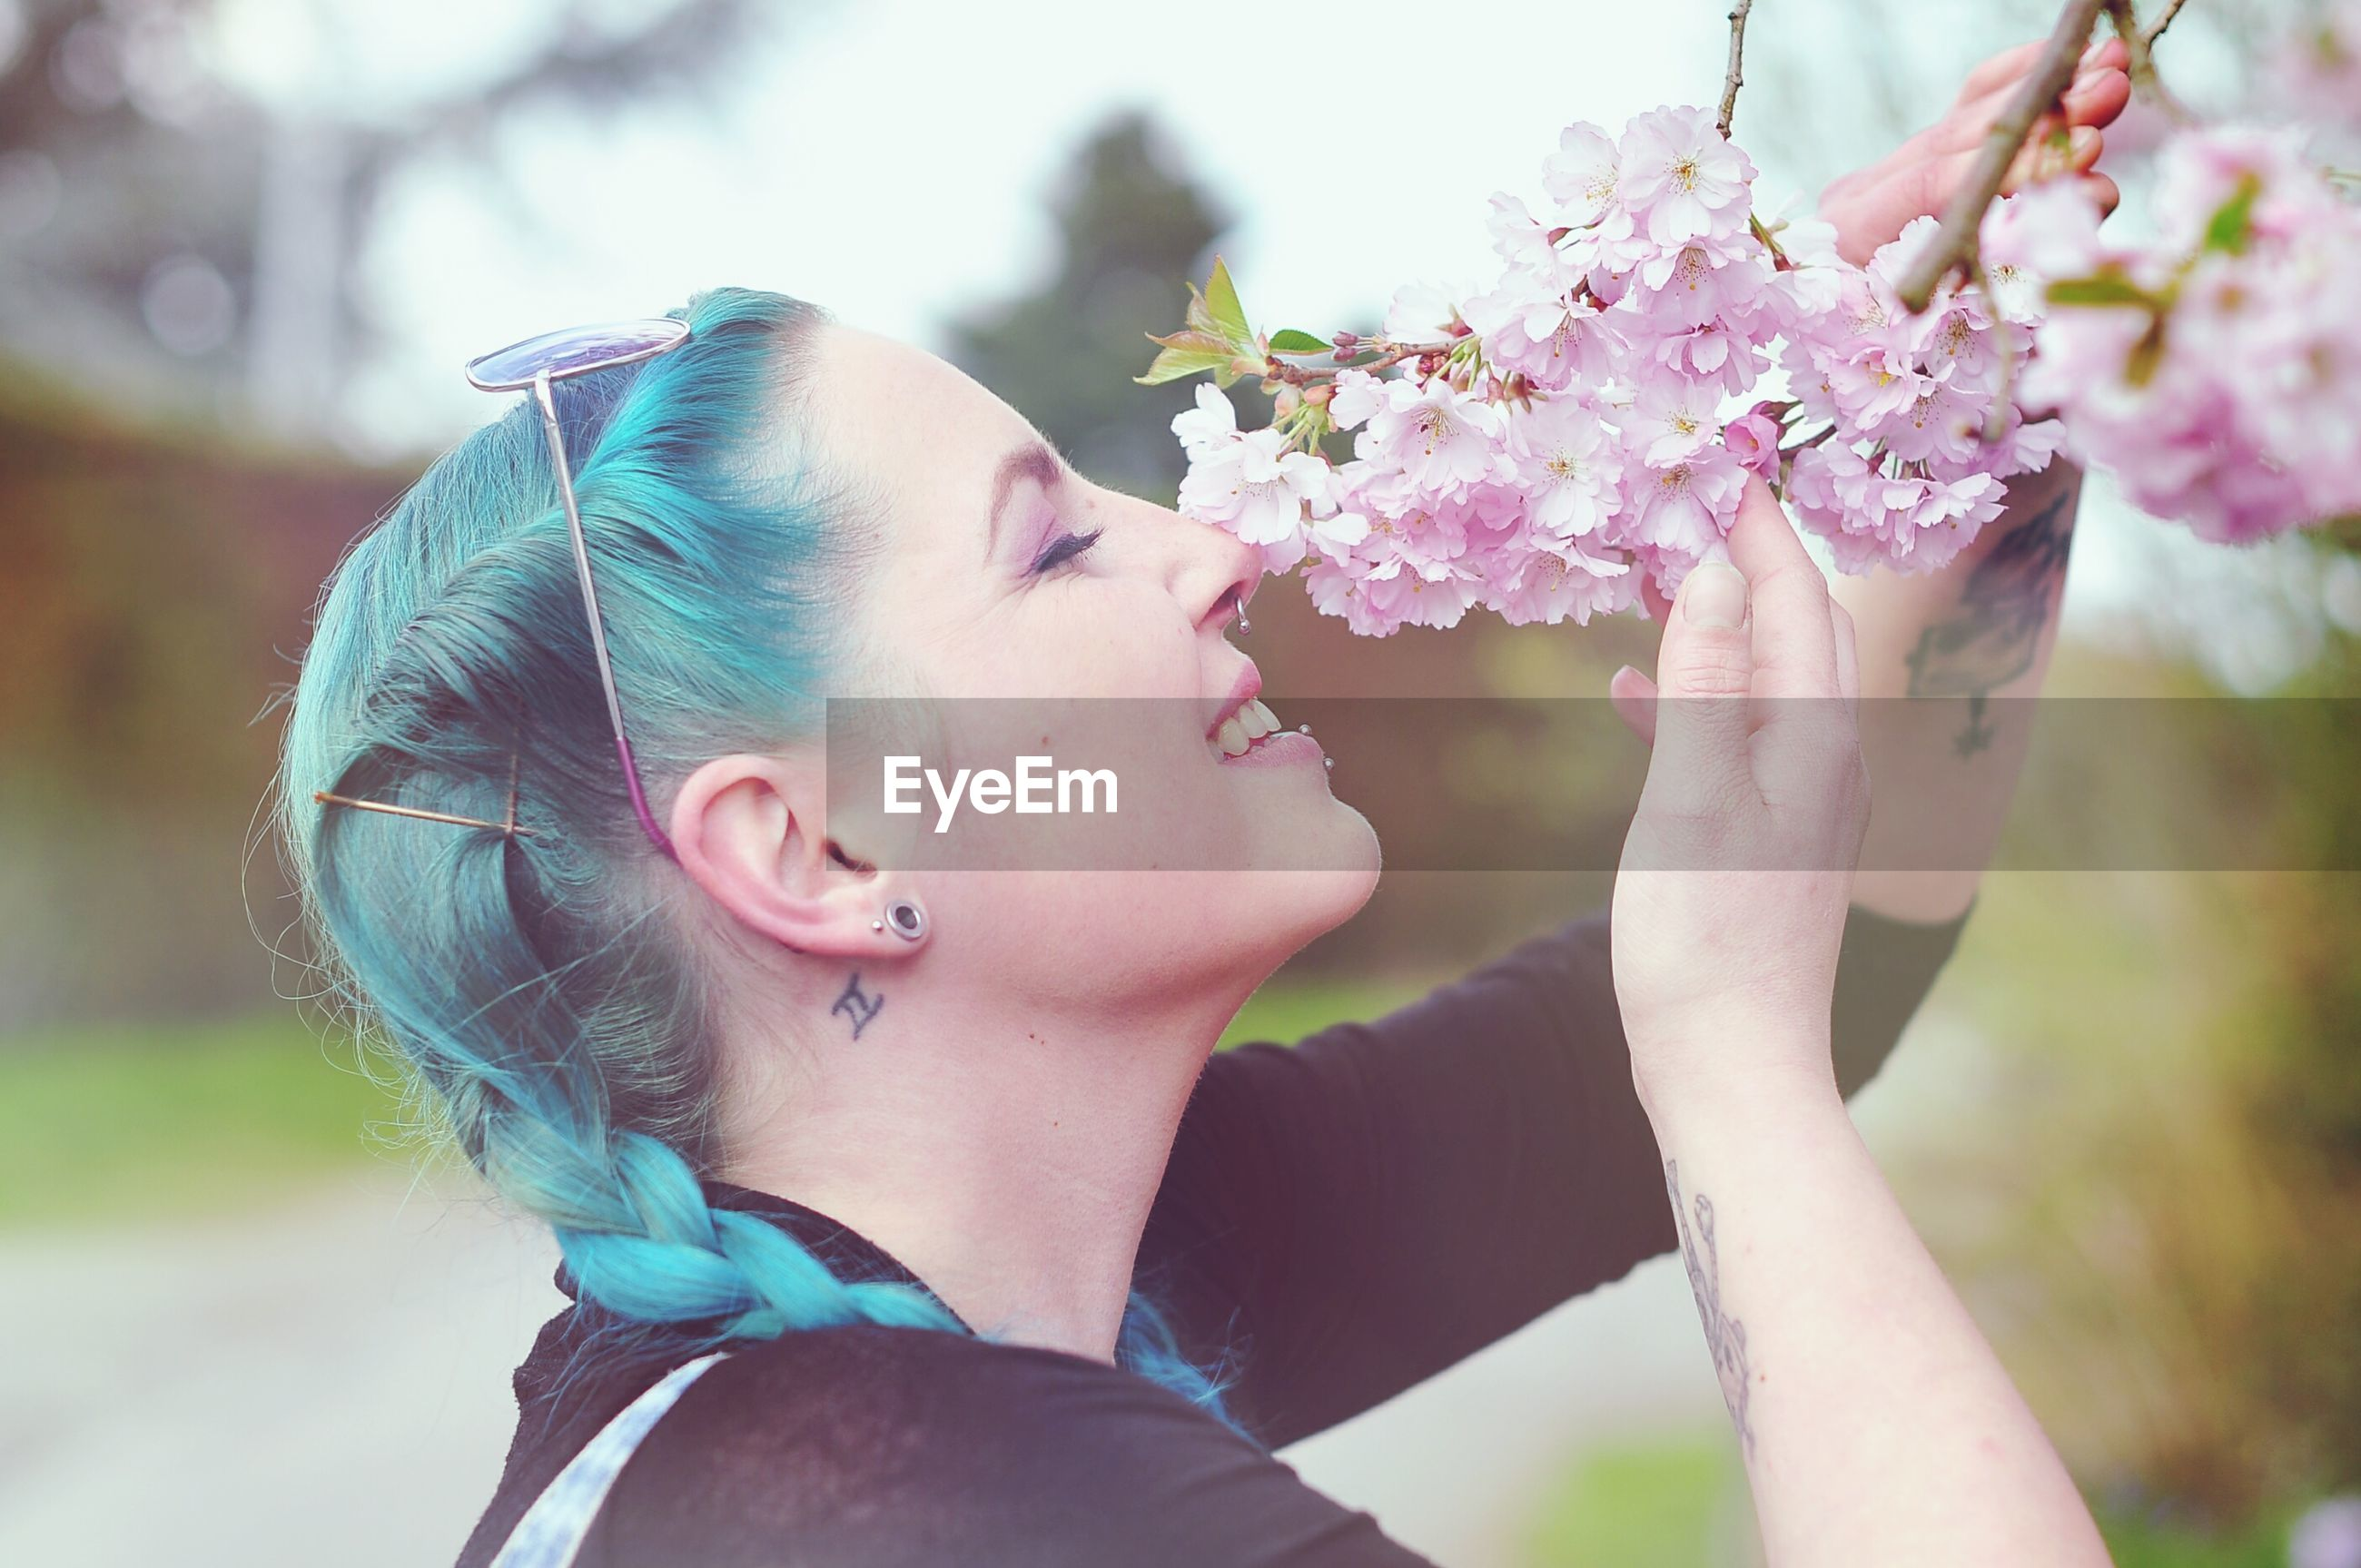 focus on foreground, person, lifestyles, leisure activity, flower, young adult, headshot, young women, close-up, tree, fragility, front view, park - man made space, girls, day, smiling, portrait, outdoors